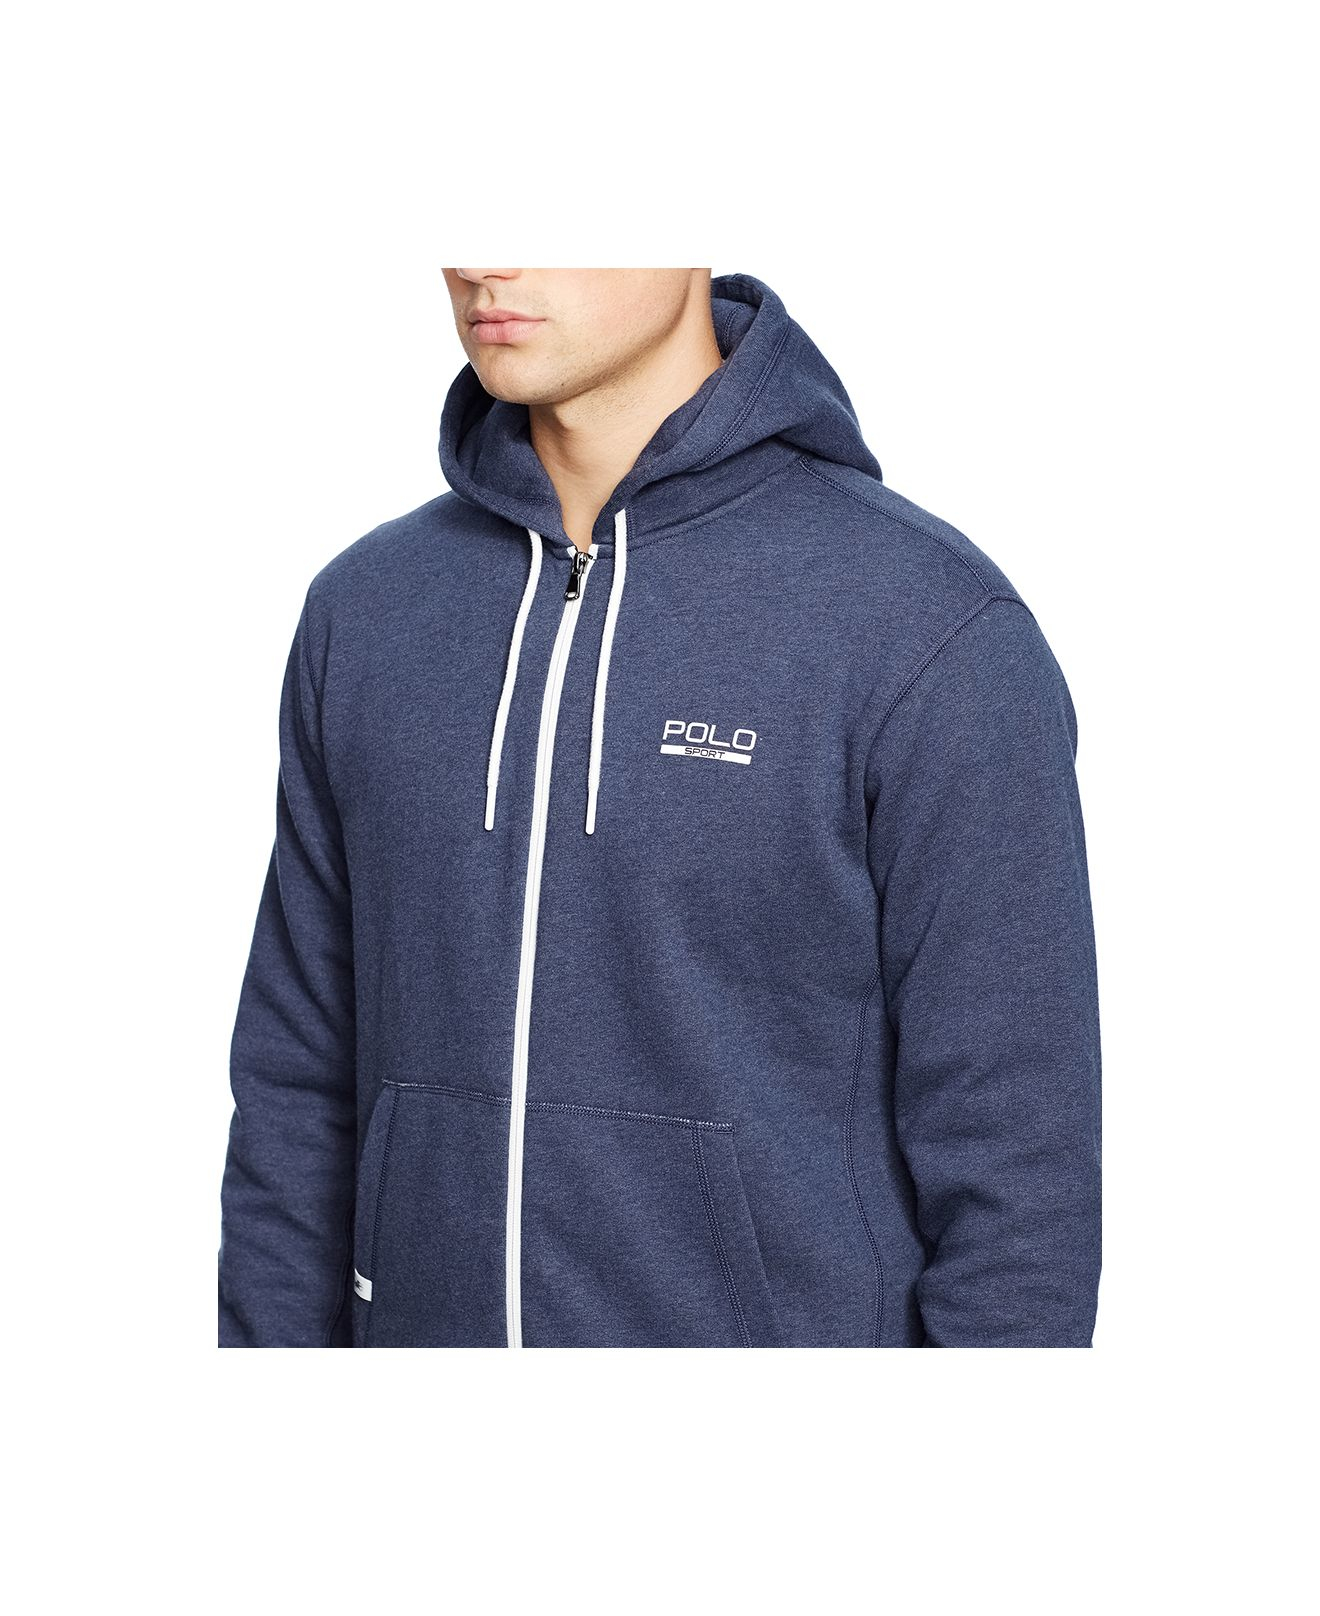 Polo zip up hoodie